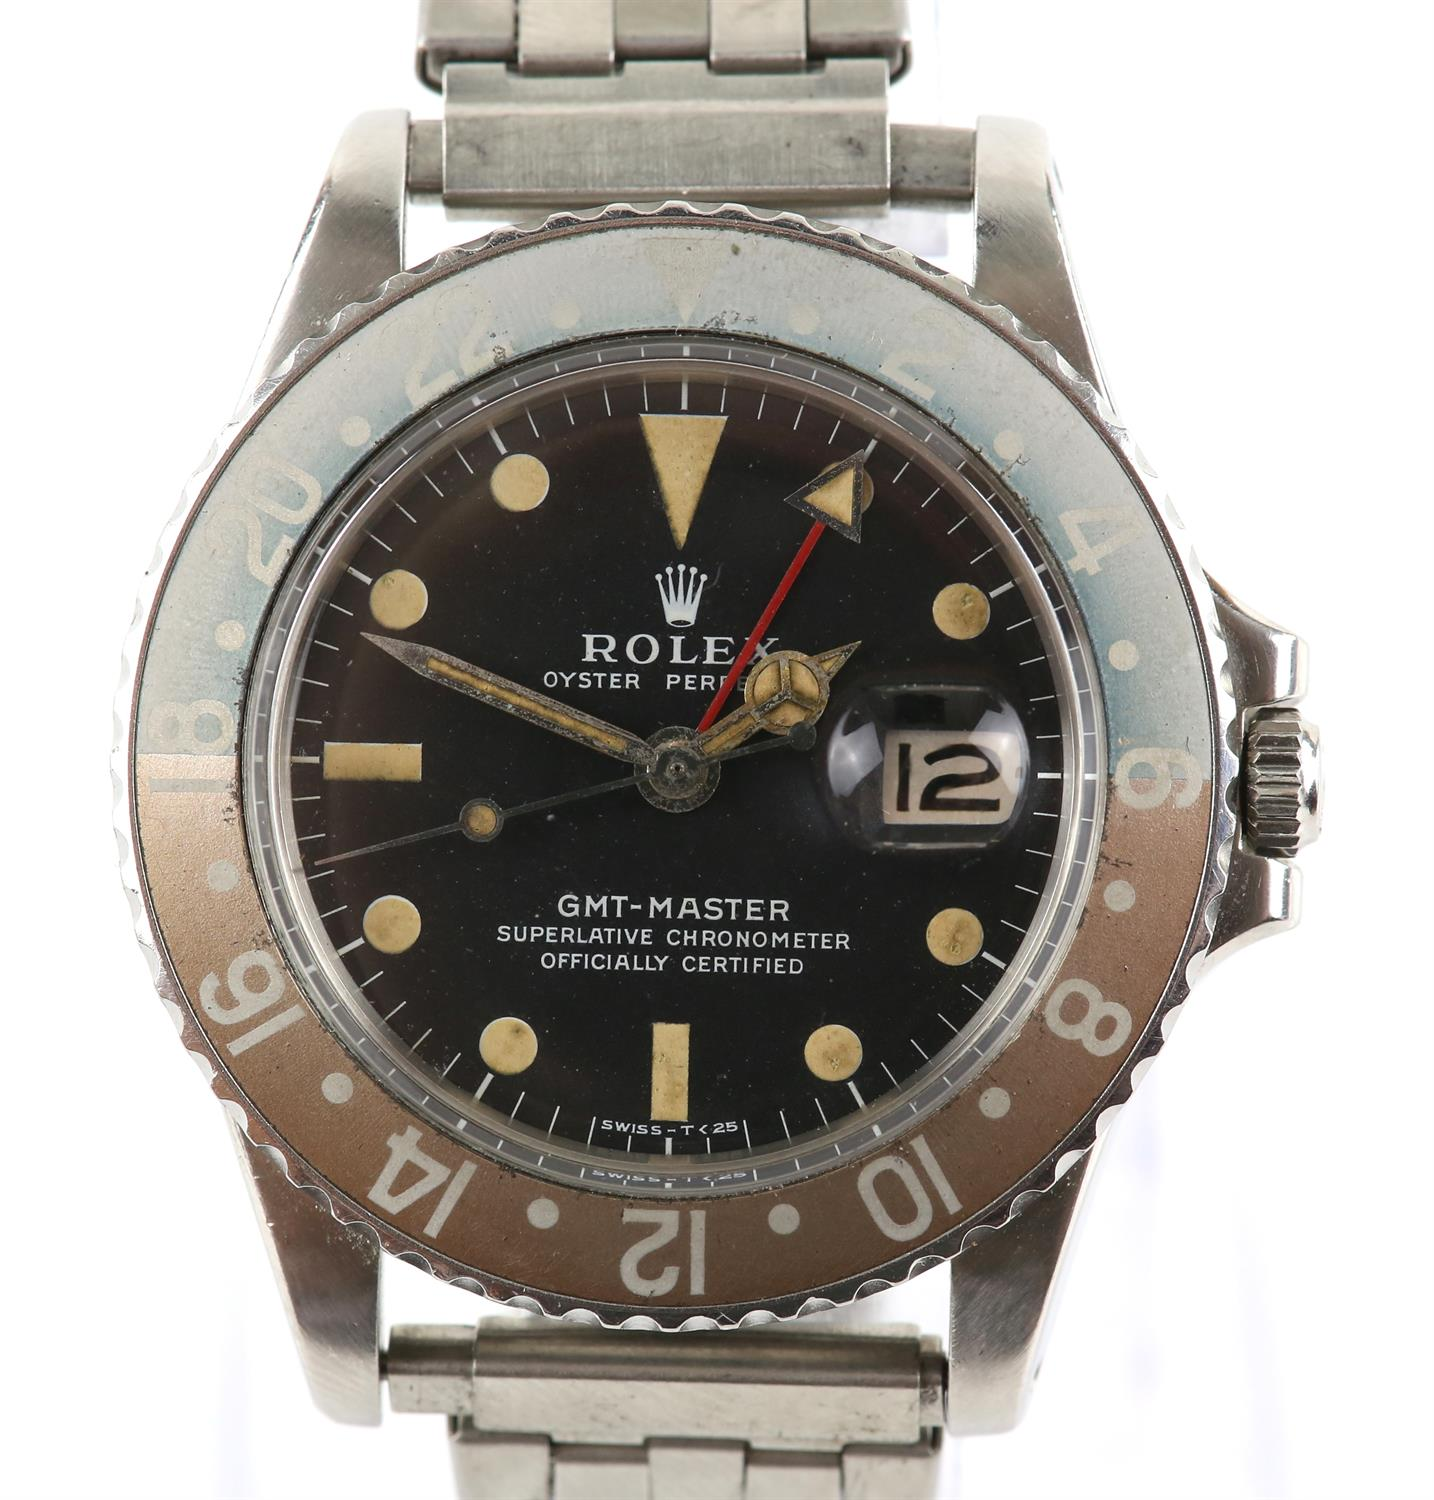 Rolex A gentleman's reference 1675 stainless steel GMT 'ghost dial' wristwatch, the signed dial